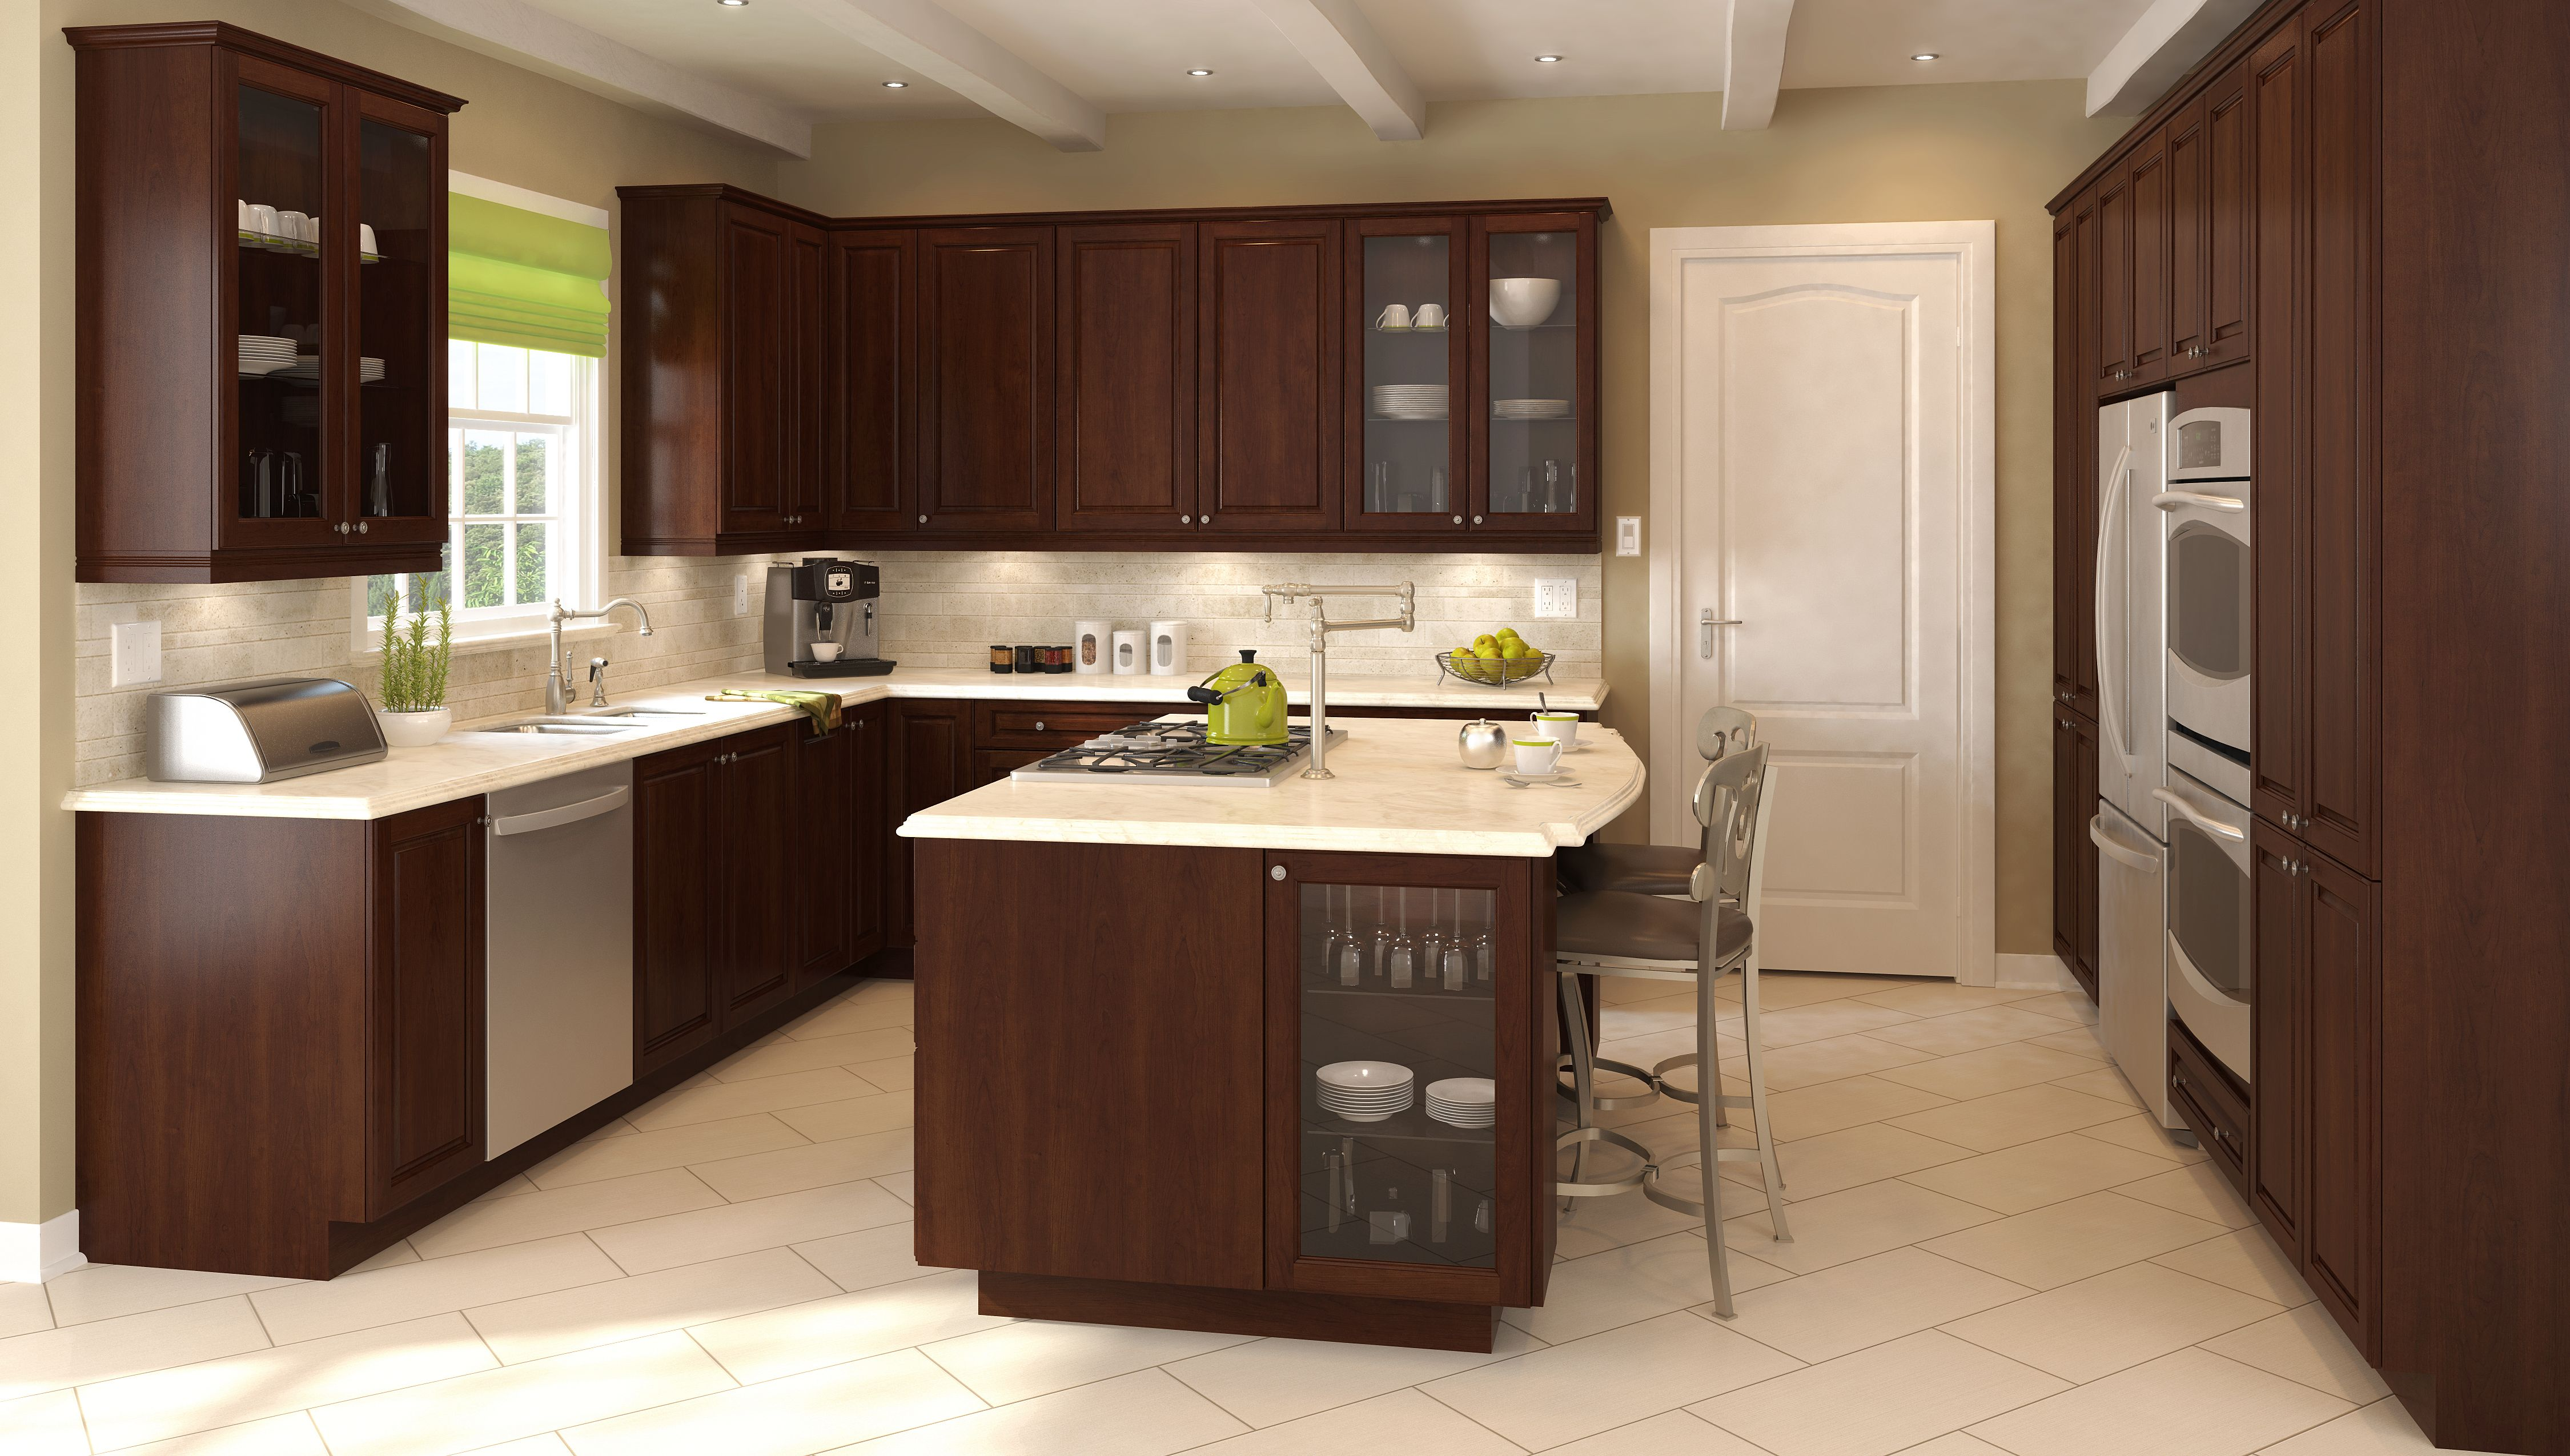 Fabritec Eurostyle Cabinets Reviews | Cabinets Matttroy